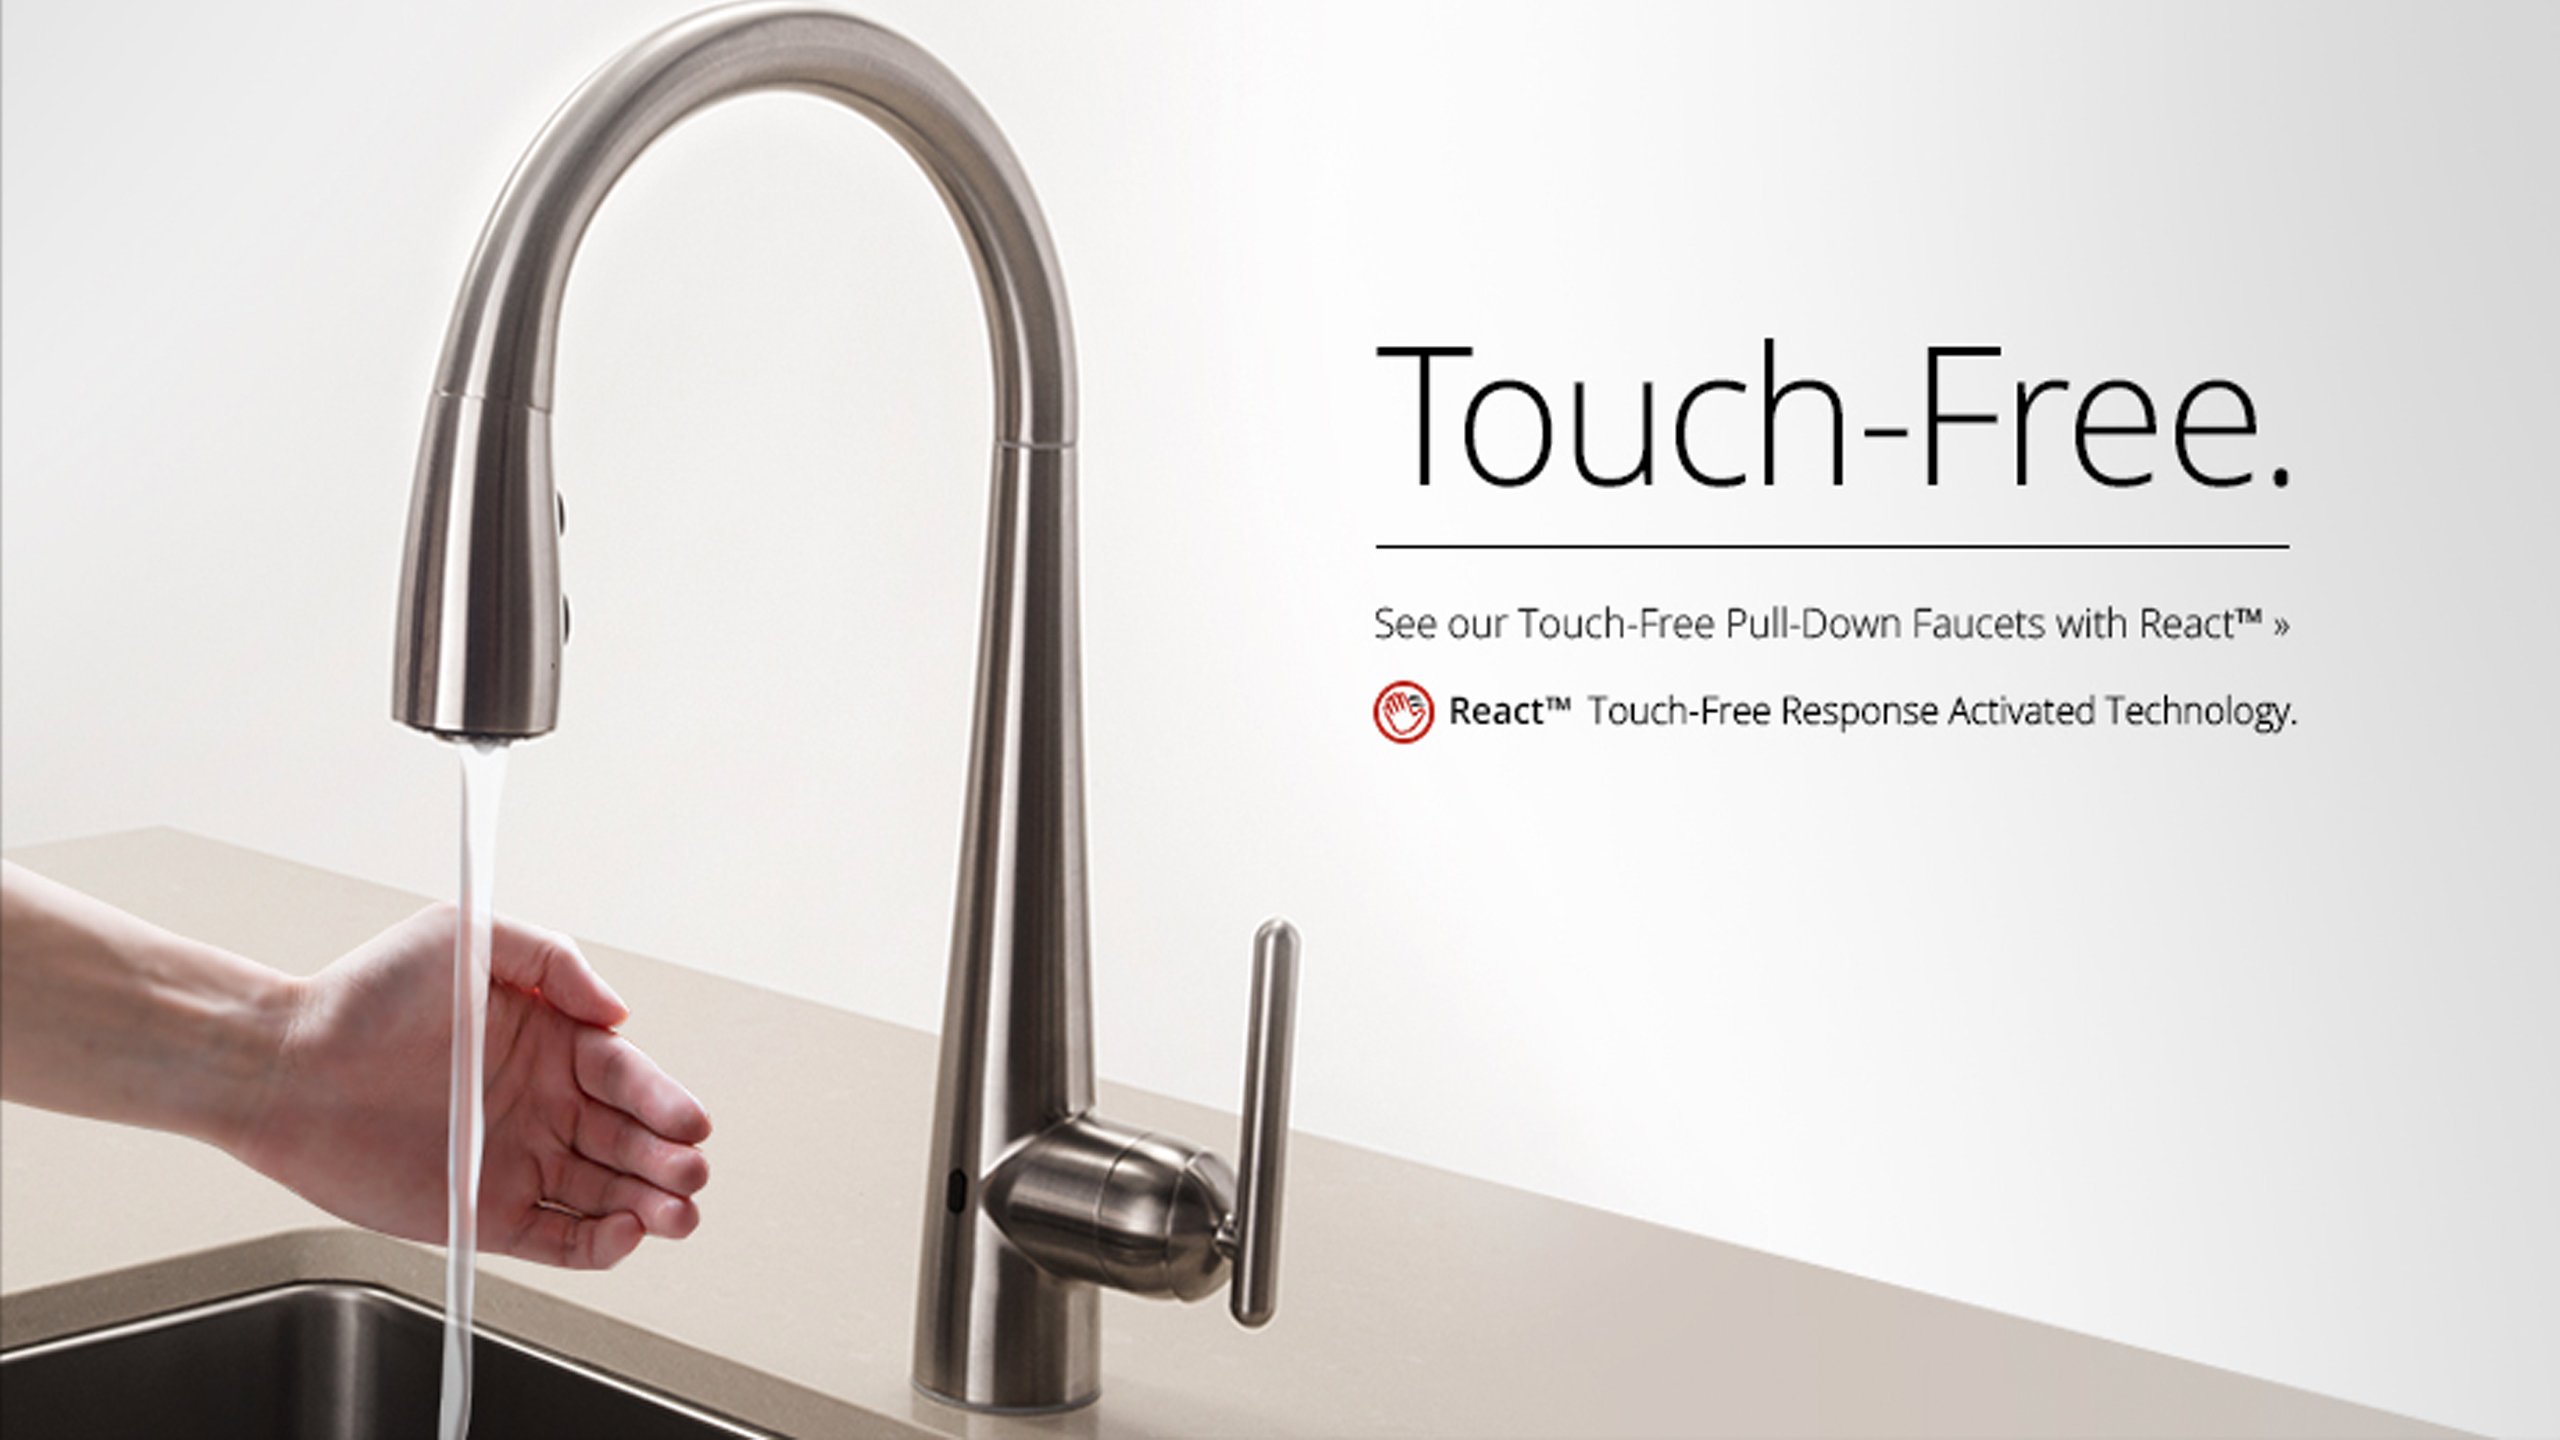 Pfister REACT Touch-Free Faucet - Pfister Faucets Kitchen & Bath ...